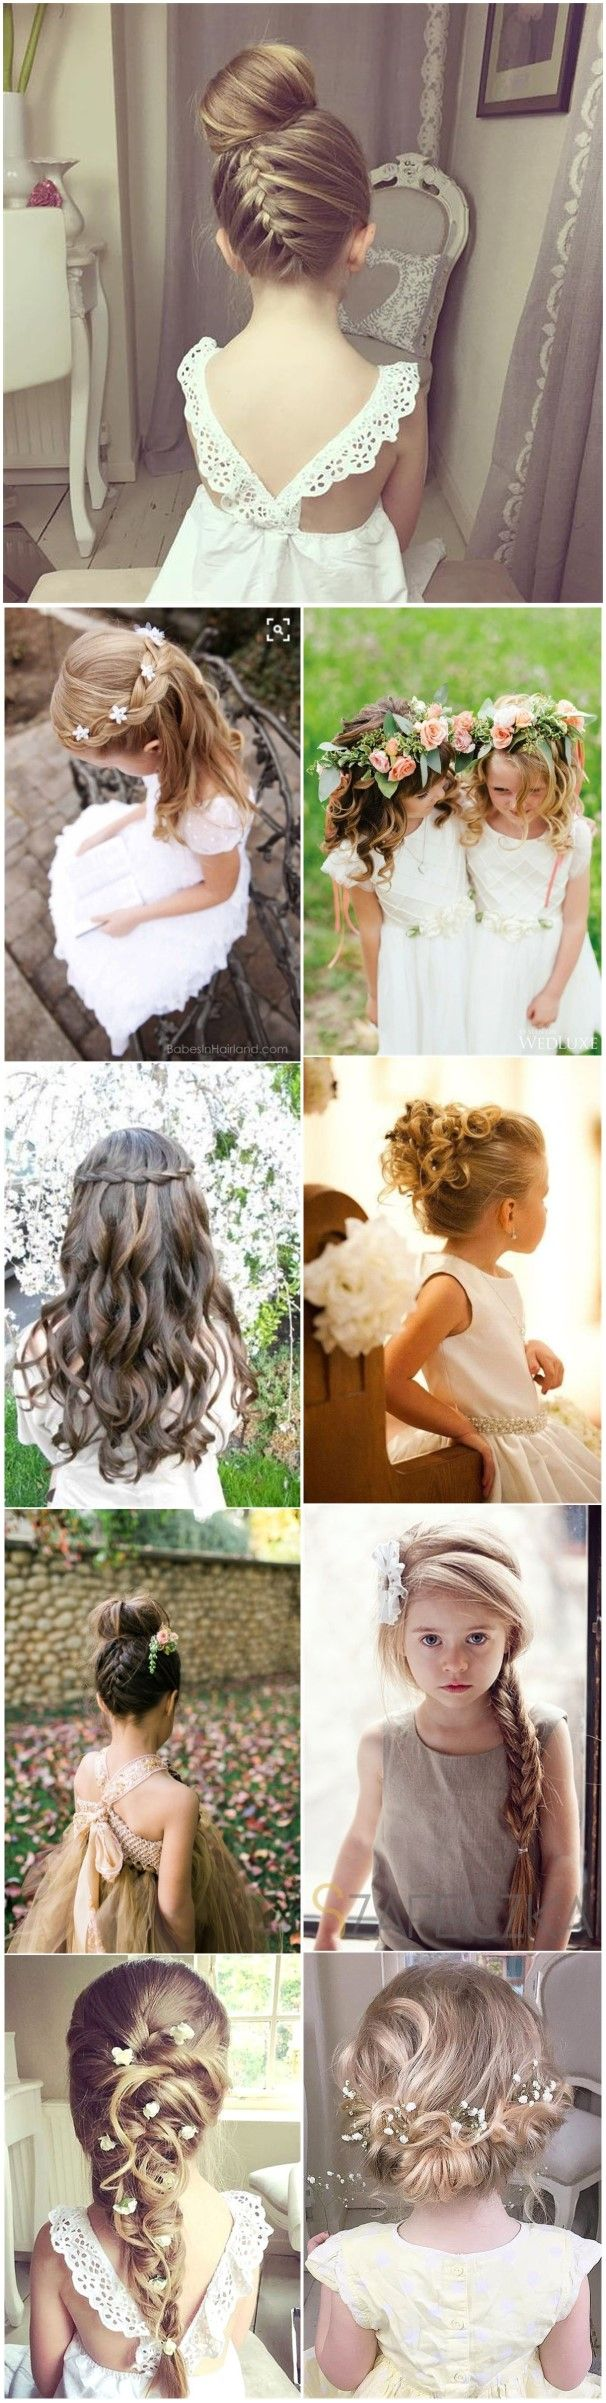 Wedding hairstyles for kids girls - 22 Adorable Flower Girl Hairstyles To Get Inspired Flower Girl Hairstyleskids Wedding